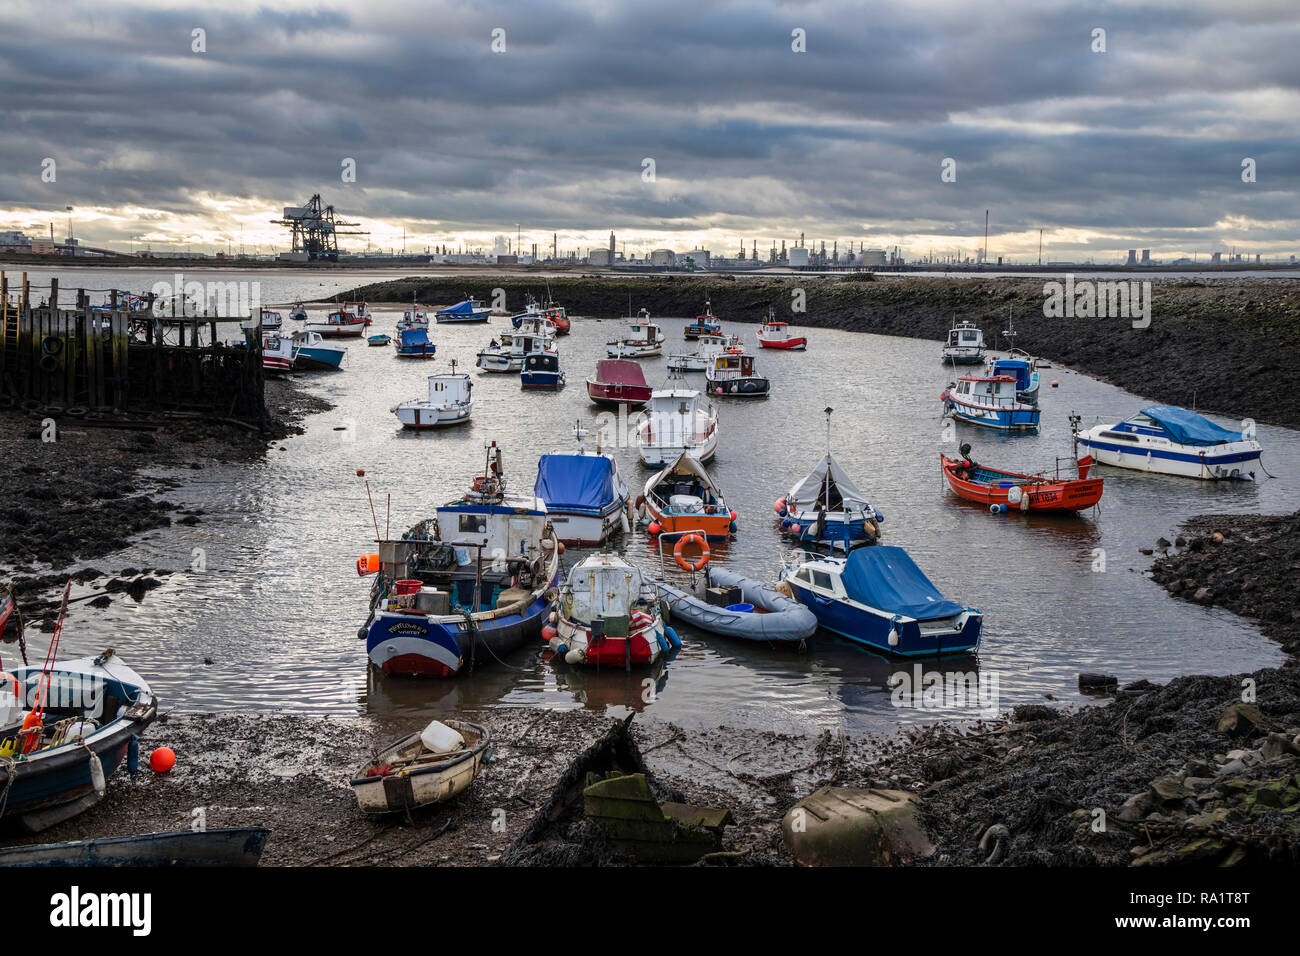 Paddy's Hole, South Gare, Redcar, with the Heavy Industrial Landscape of Teesside Beyond, Teesmouth, North East England, UK - Stock Image